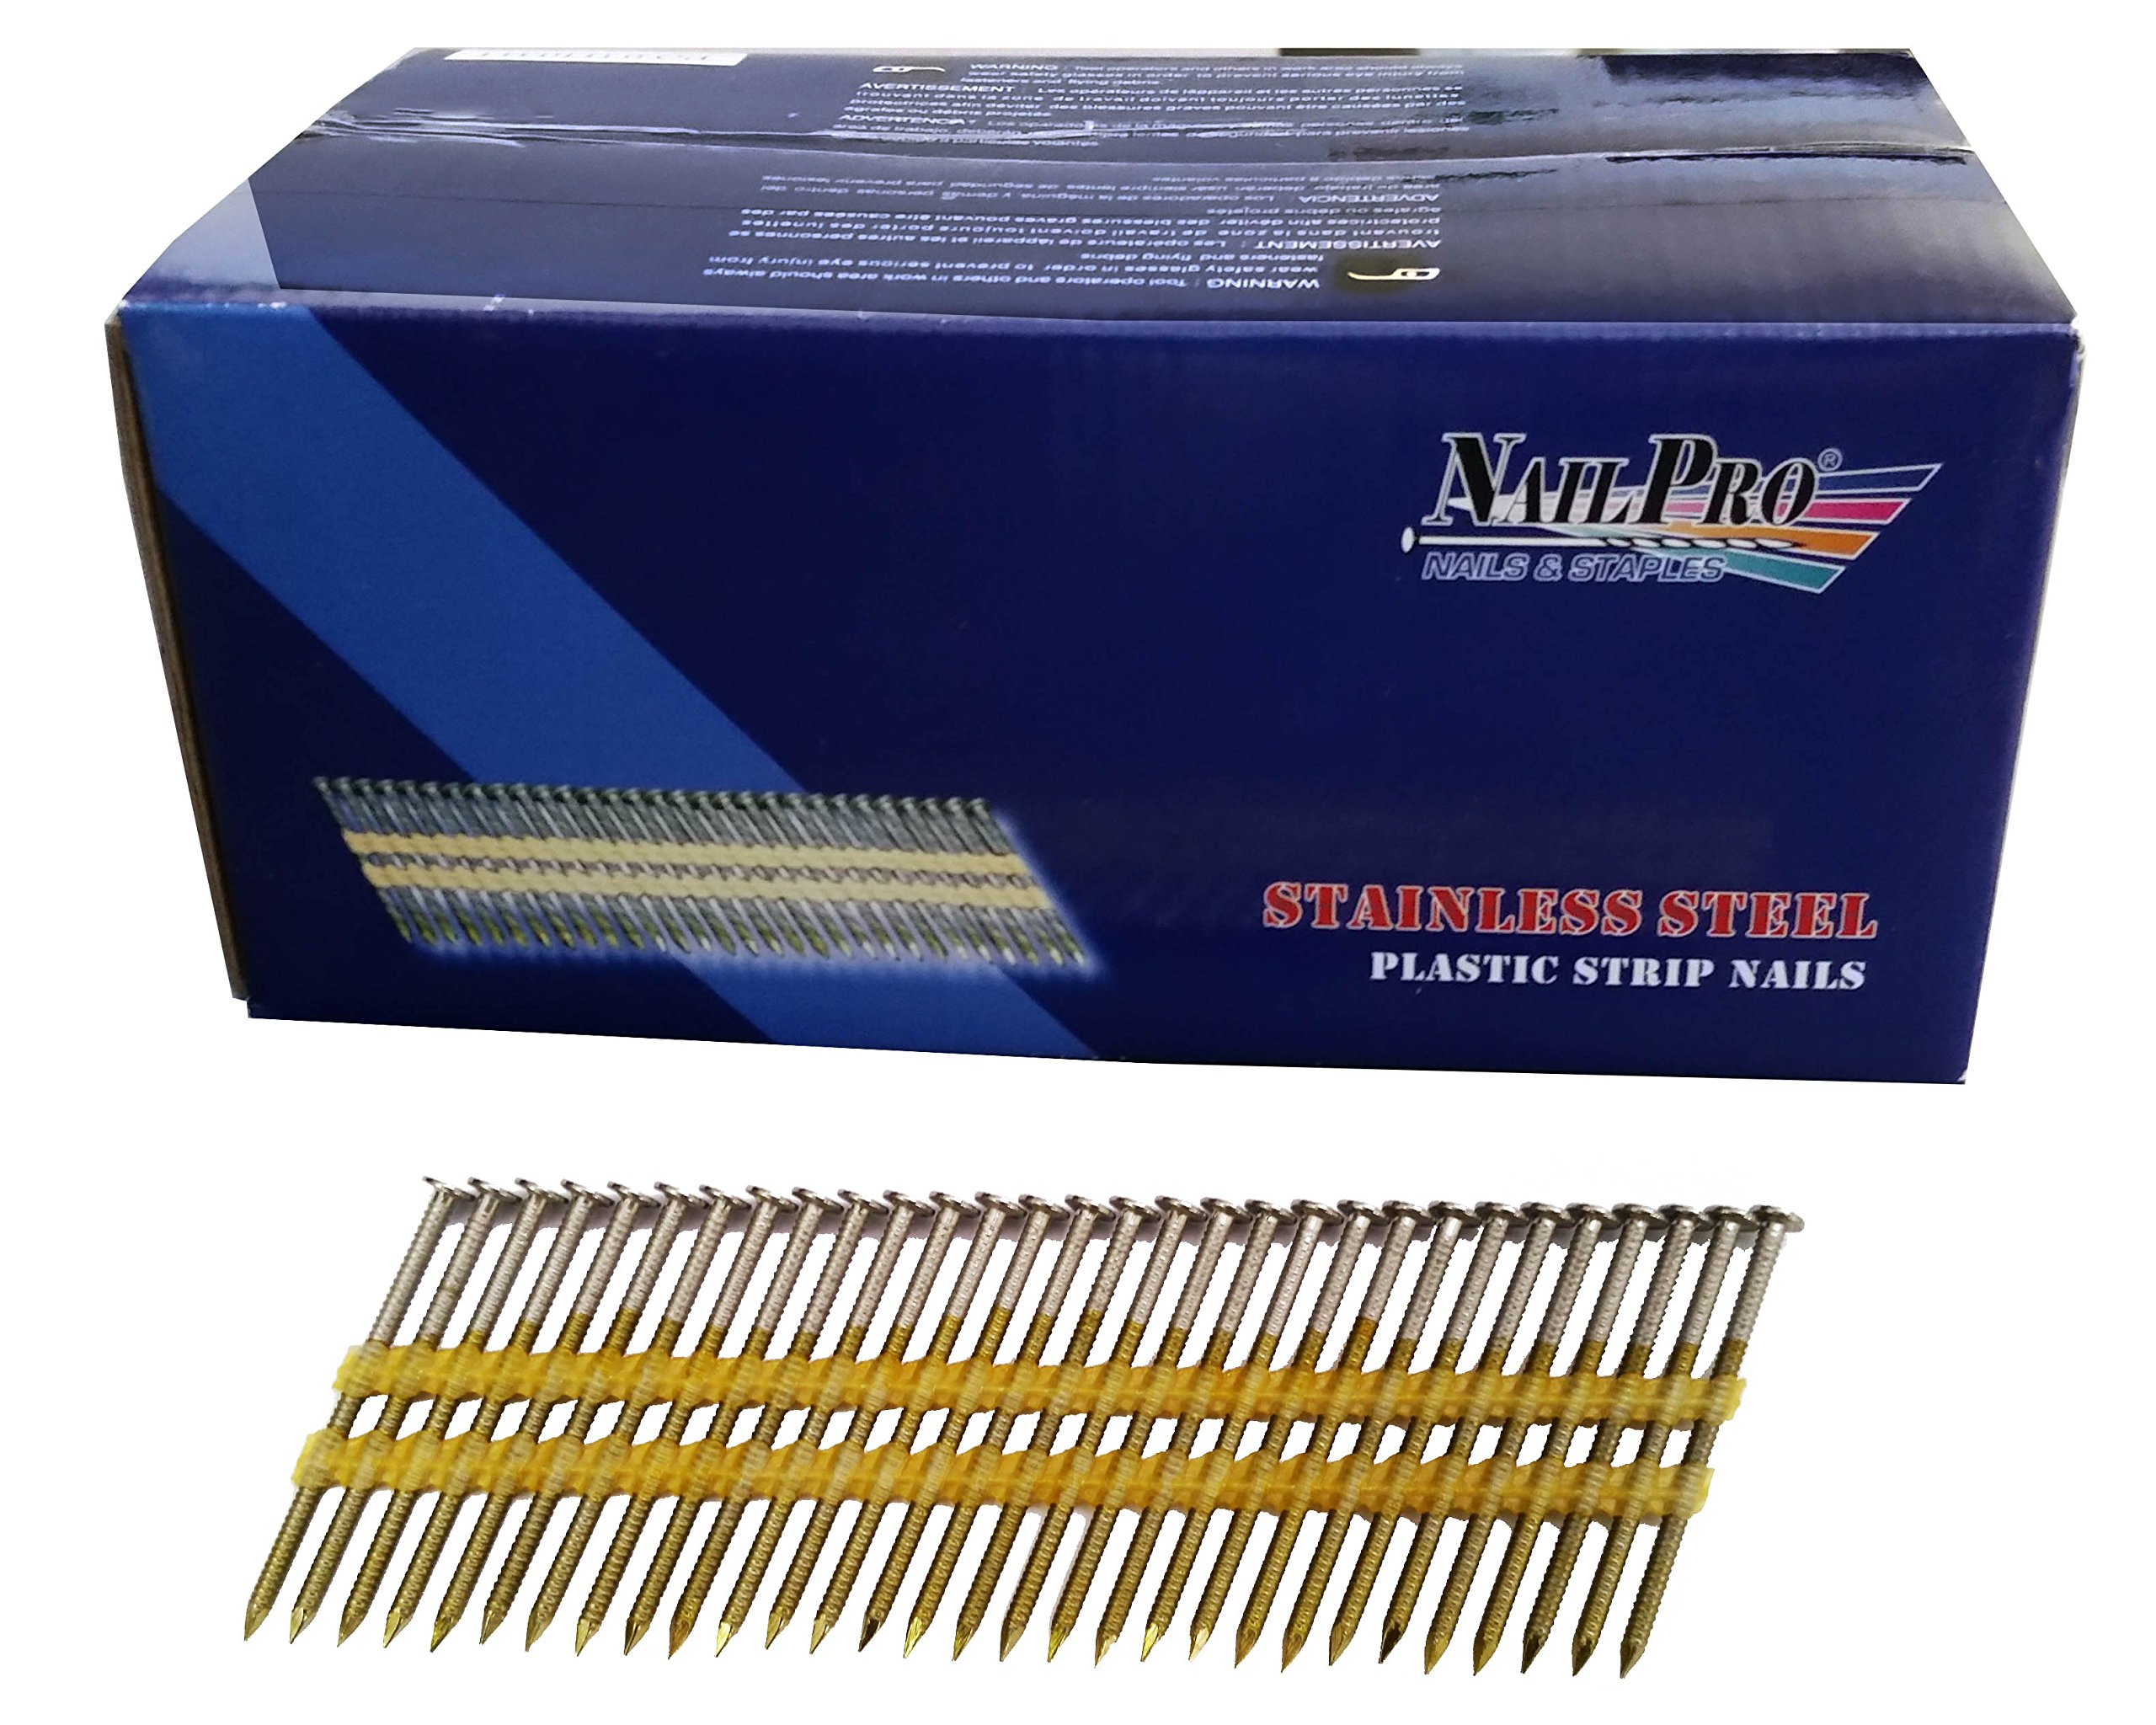 NailPro 3-1/2 Inch by 0.131 - 1000 Pcs. per Carton - Type 316 Stainless Steel - 21 Degree (Fits 20-22 Degree Nailers) Plastic Strip - Ring Shank - Full Head Nails